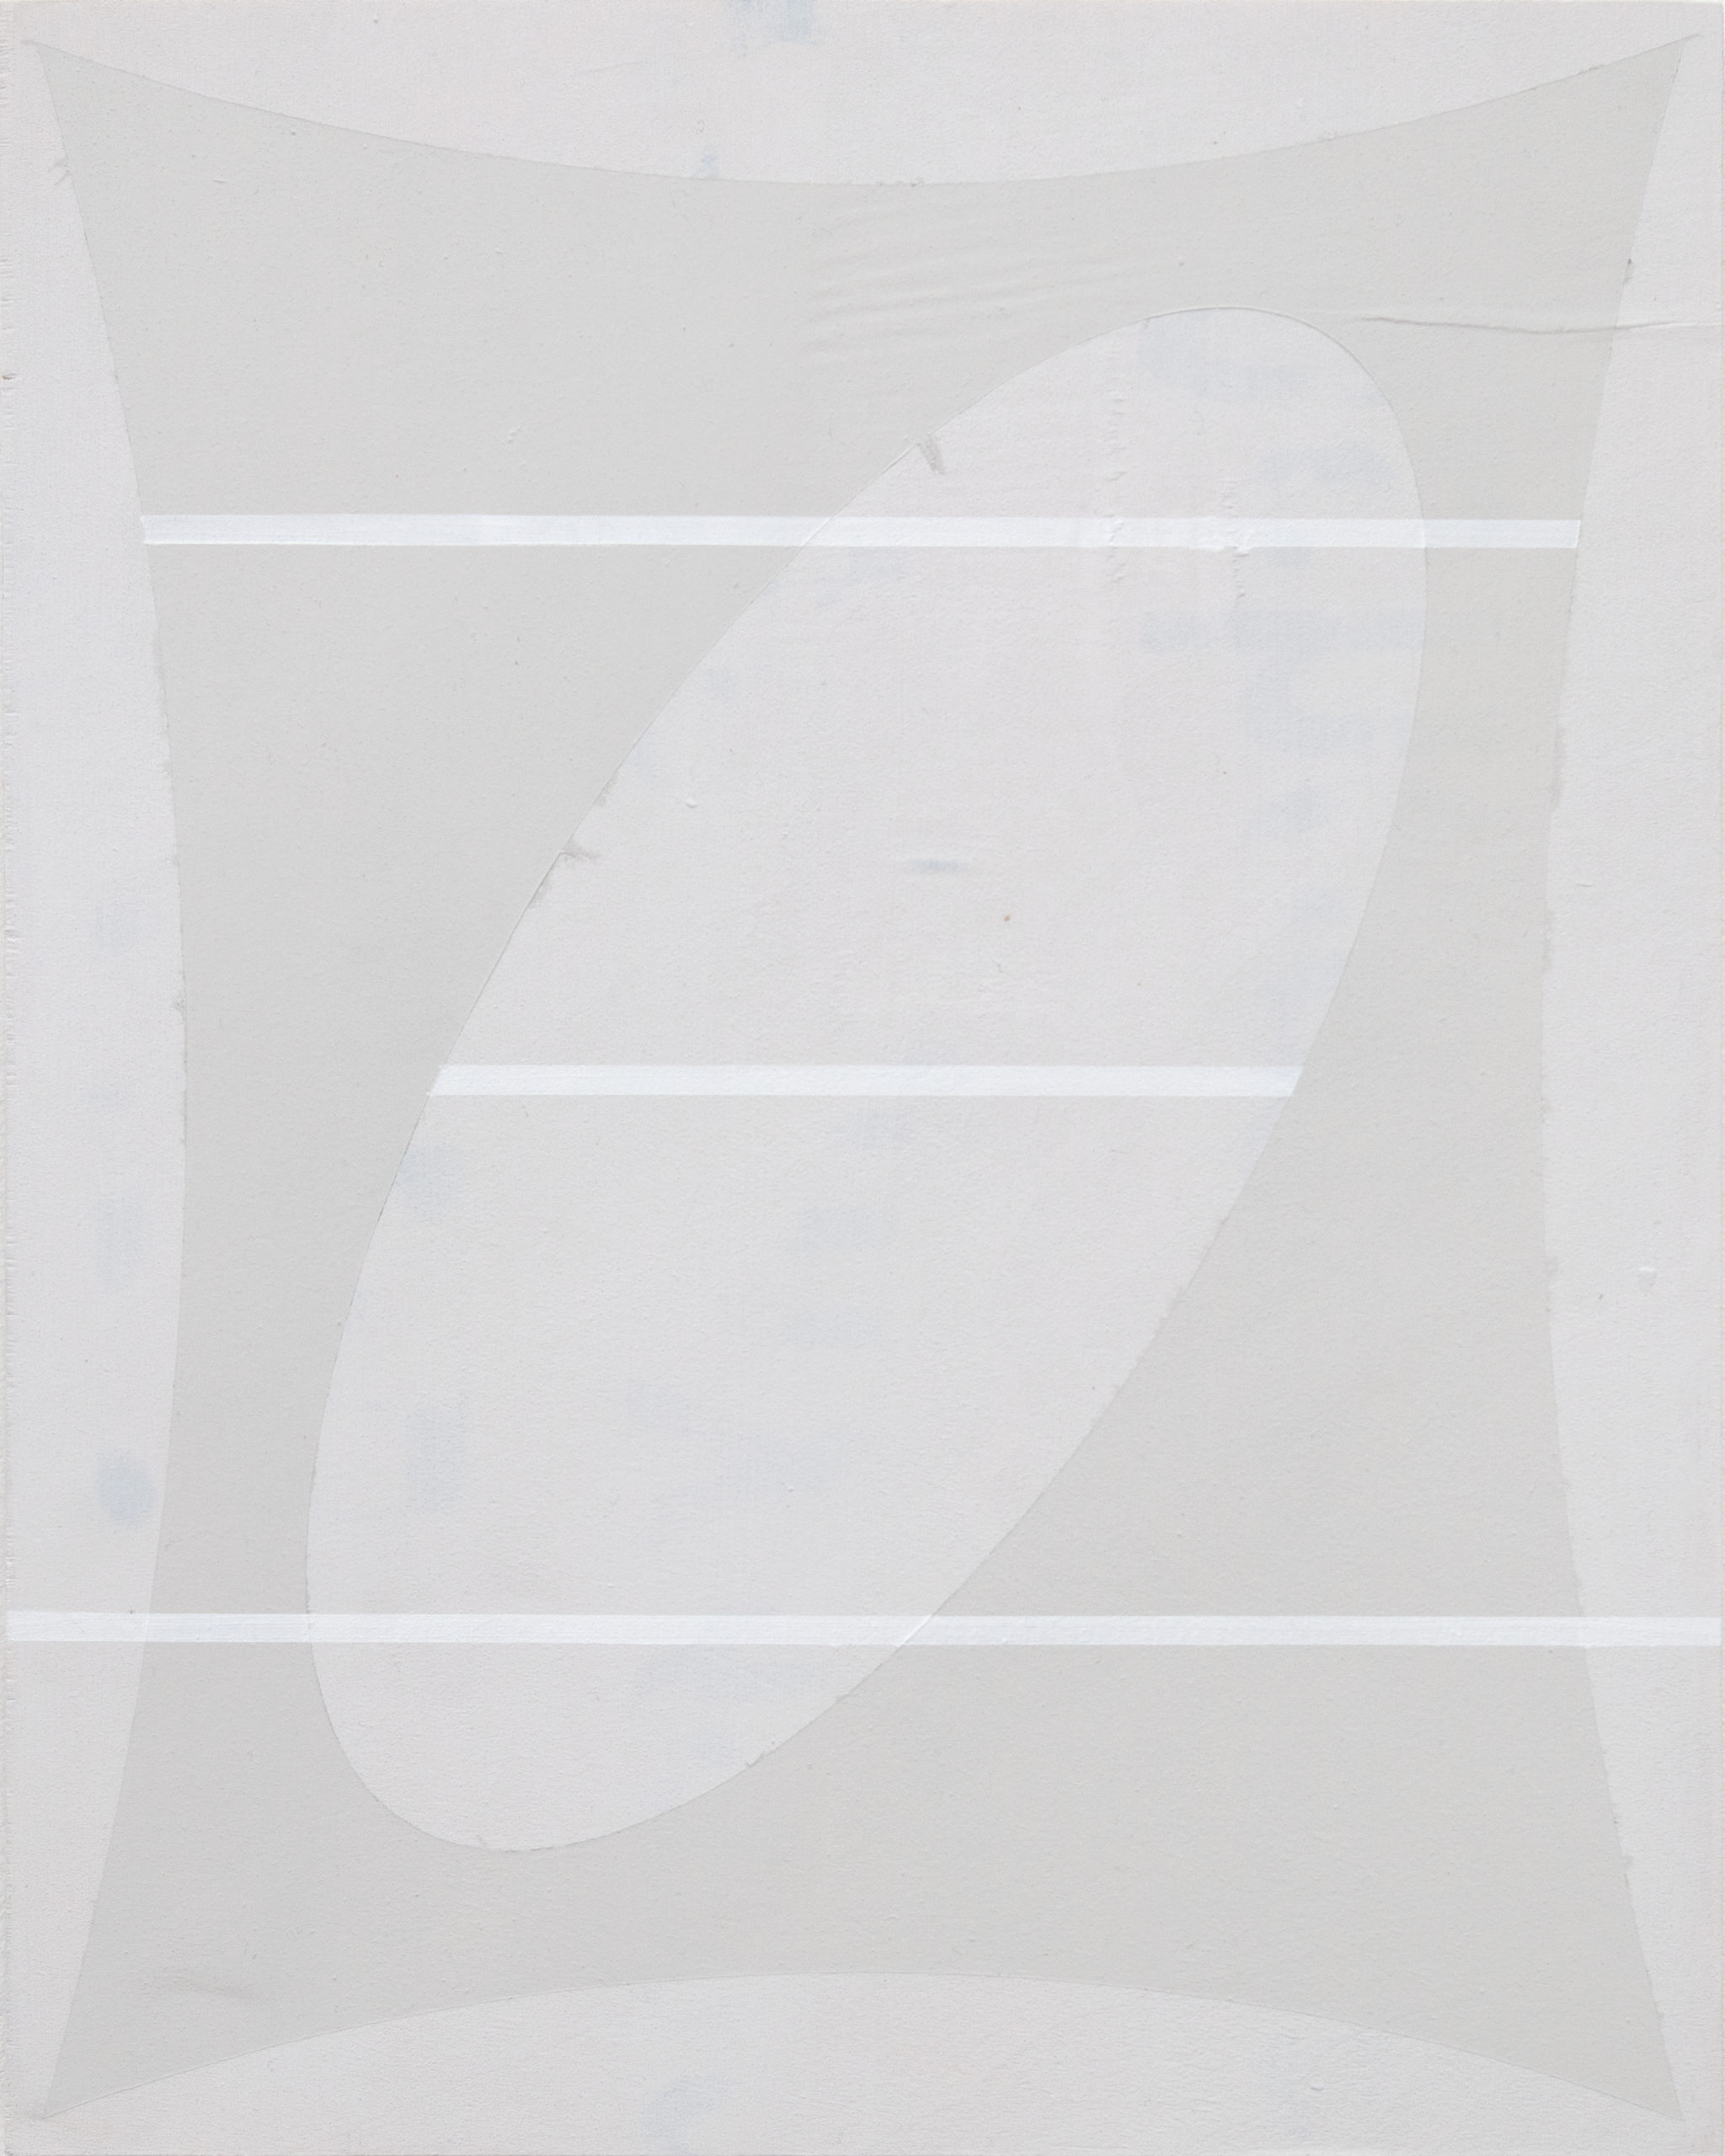 Untitled (Two Greys and White)